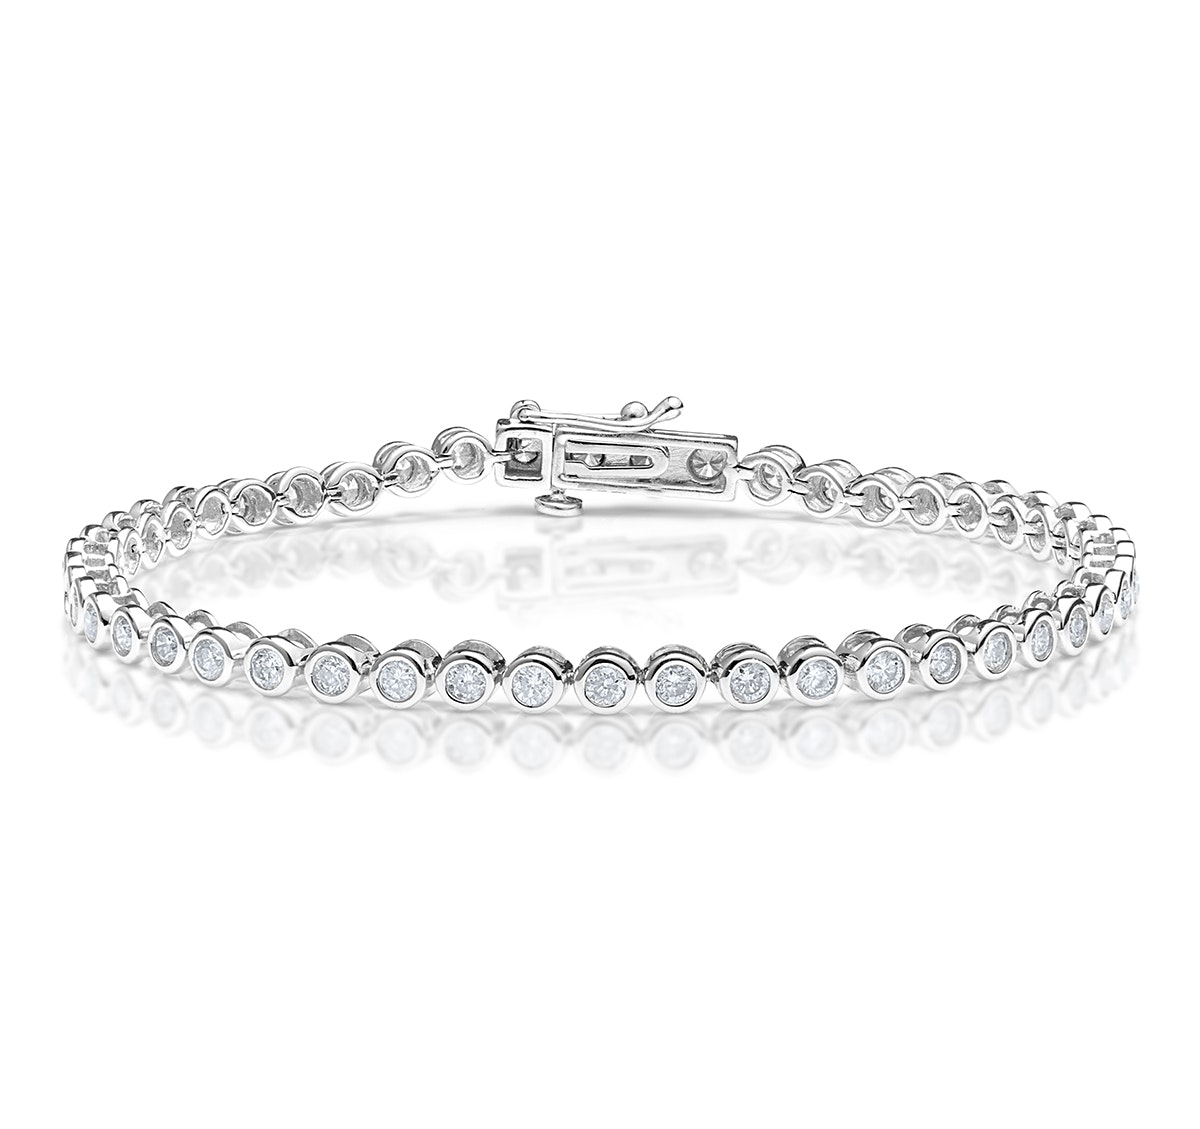 Diamond Tennis Bracelet Rubover Style 3.00ct 9K White Gold